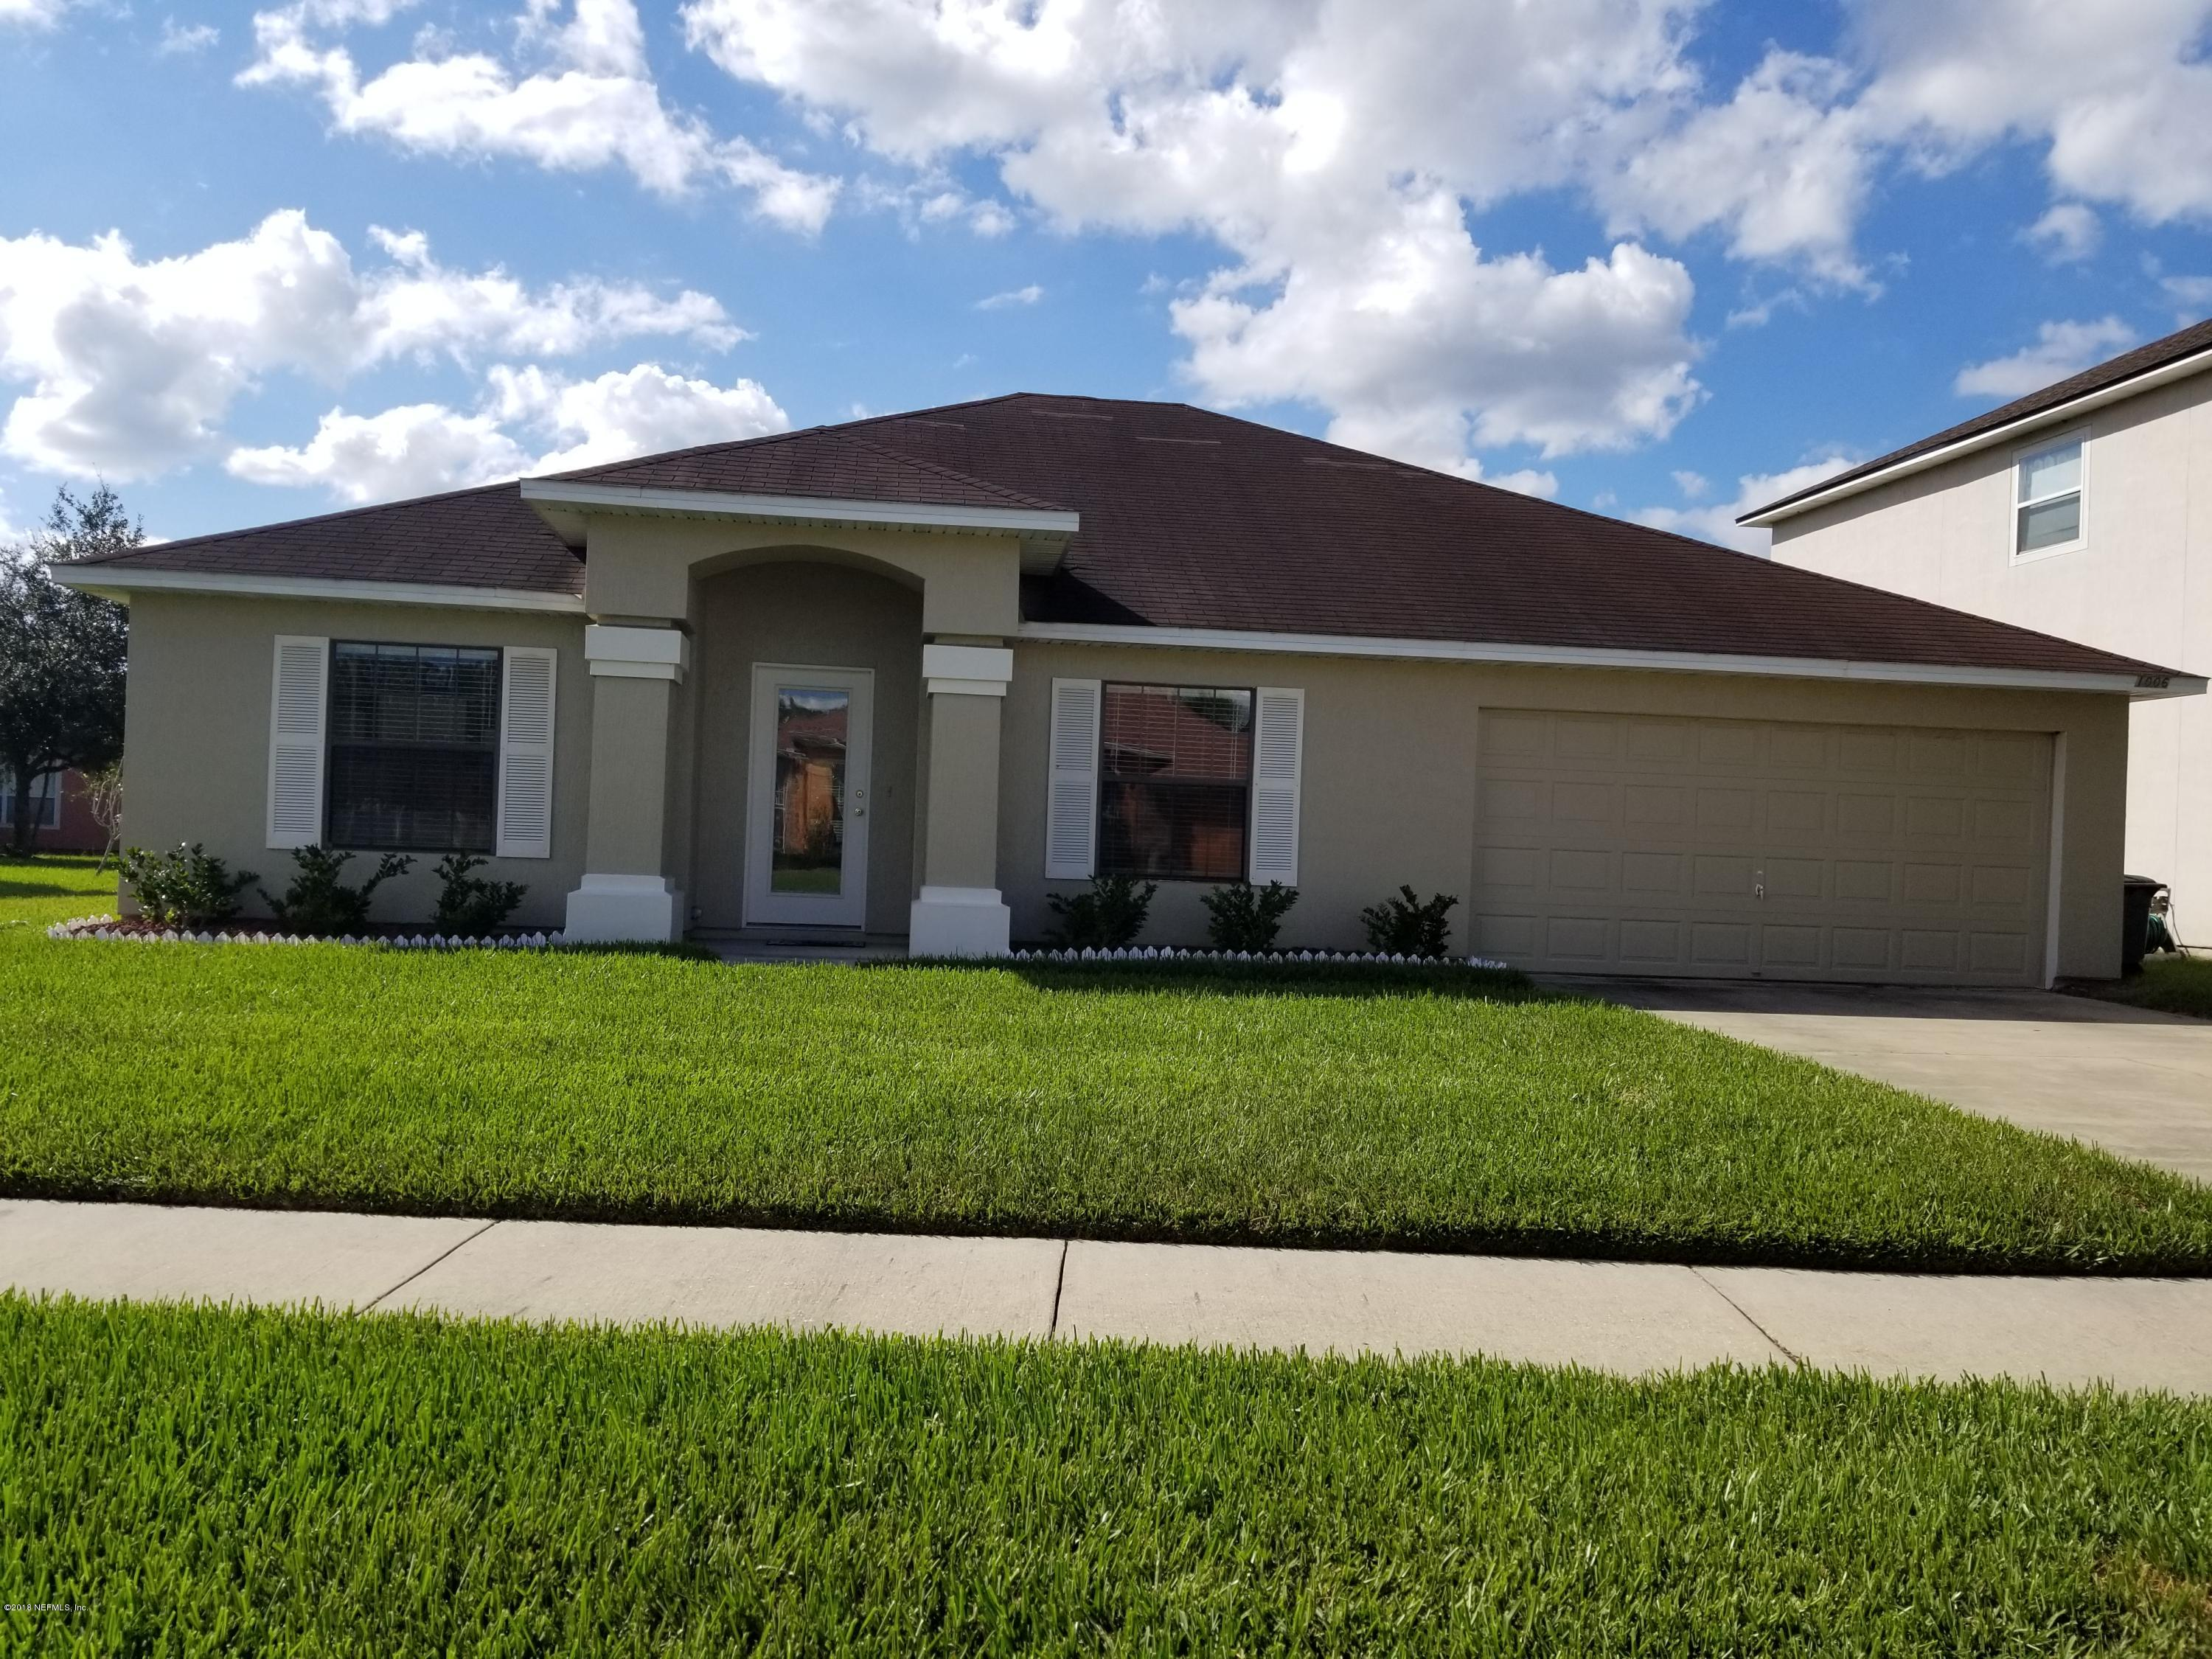 1006 FOX CHAPEL, JACKSONVILLE, FLORIDA 32221, 3 Bedrooms Bedrooms, ,2 BathroomsBathrooms,Residential - single family,For sale,FOX CHAPEL,963373